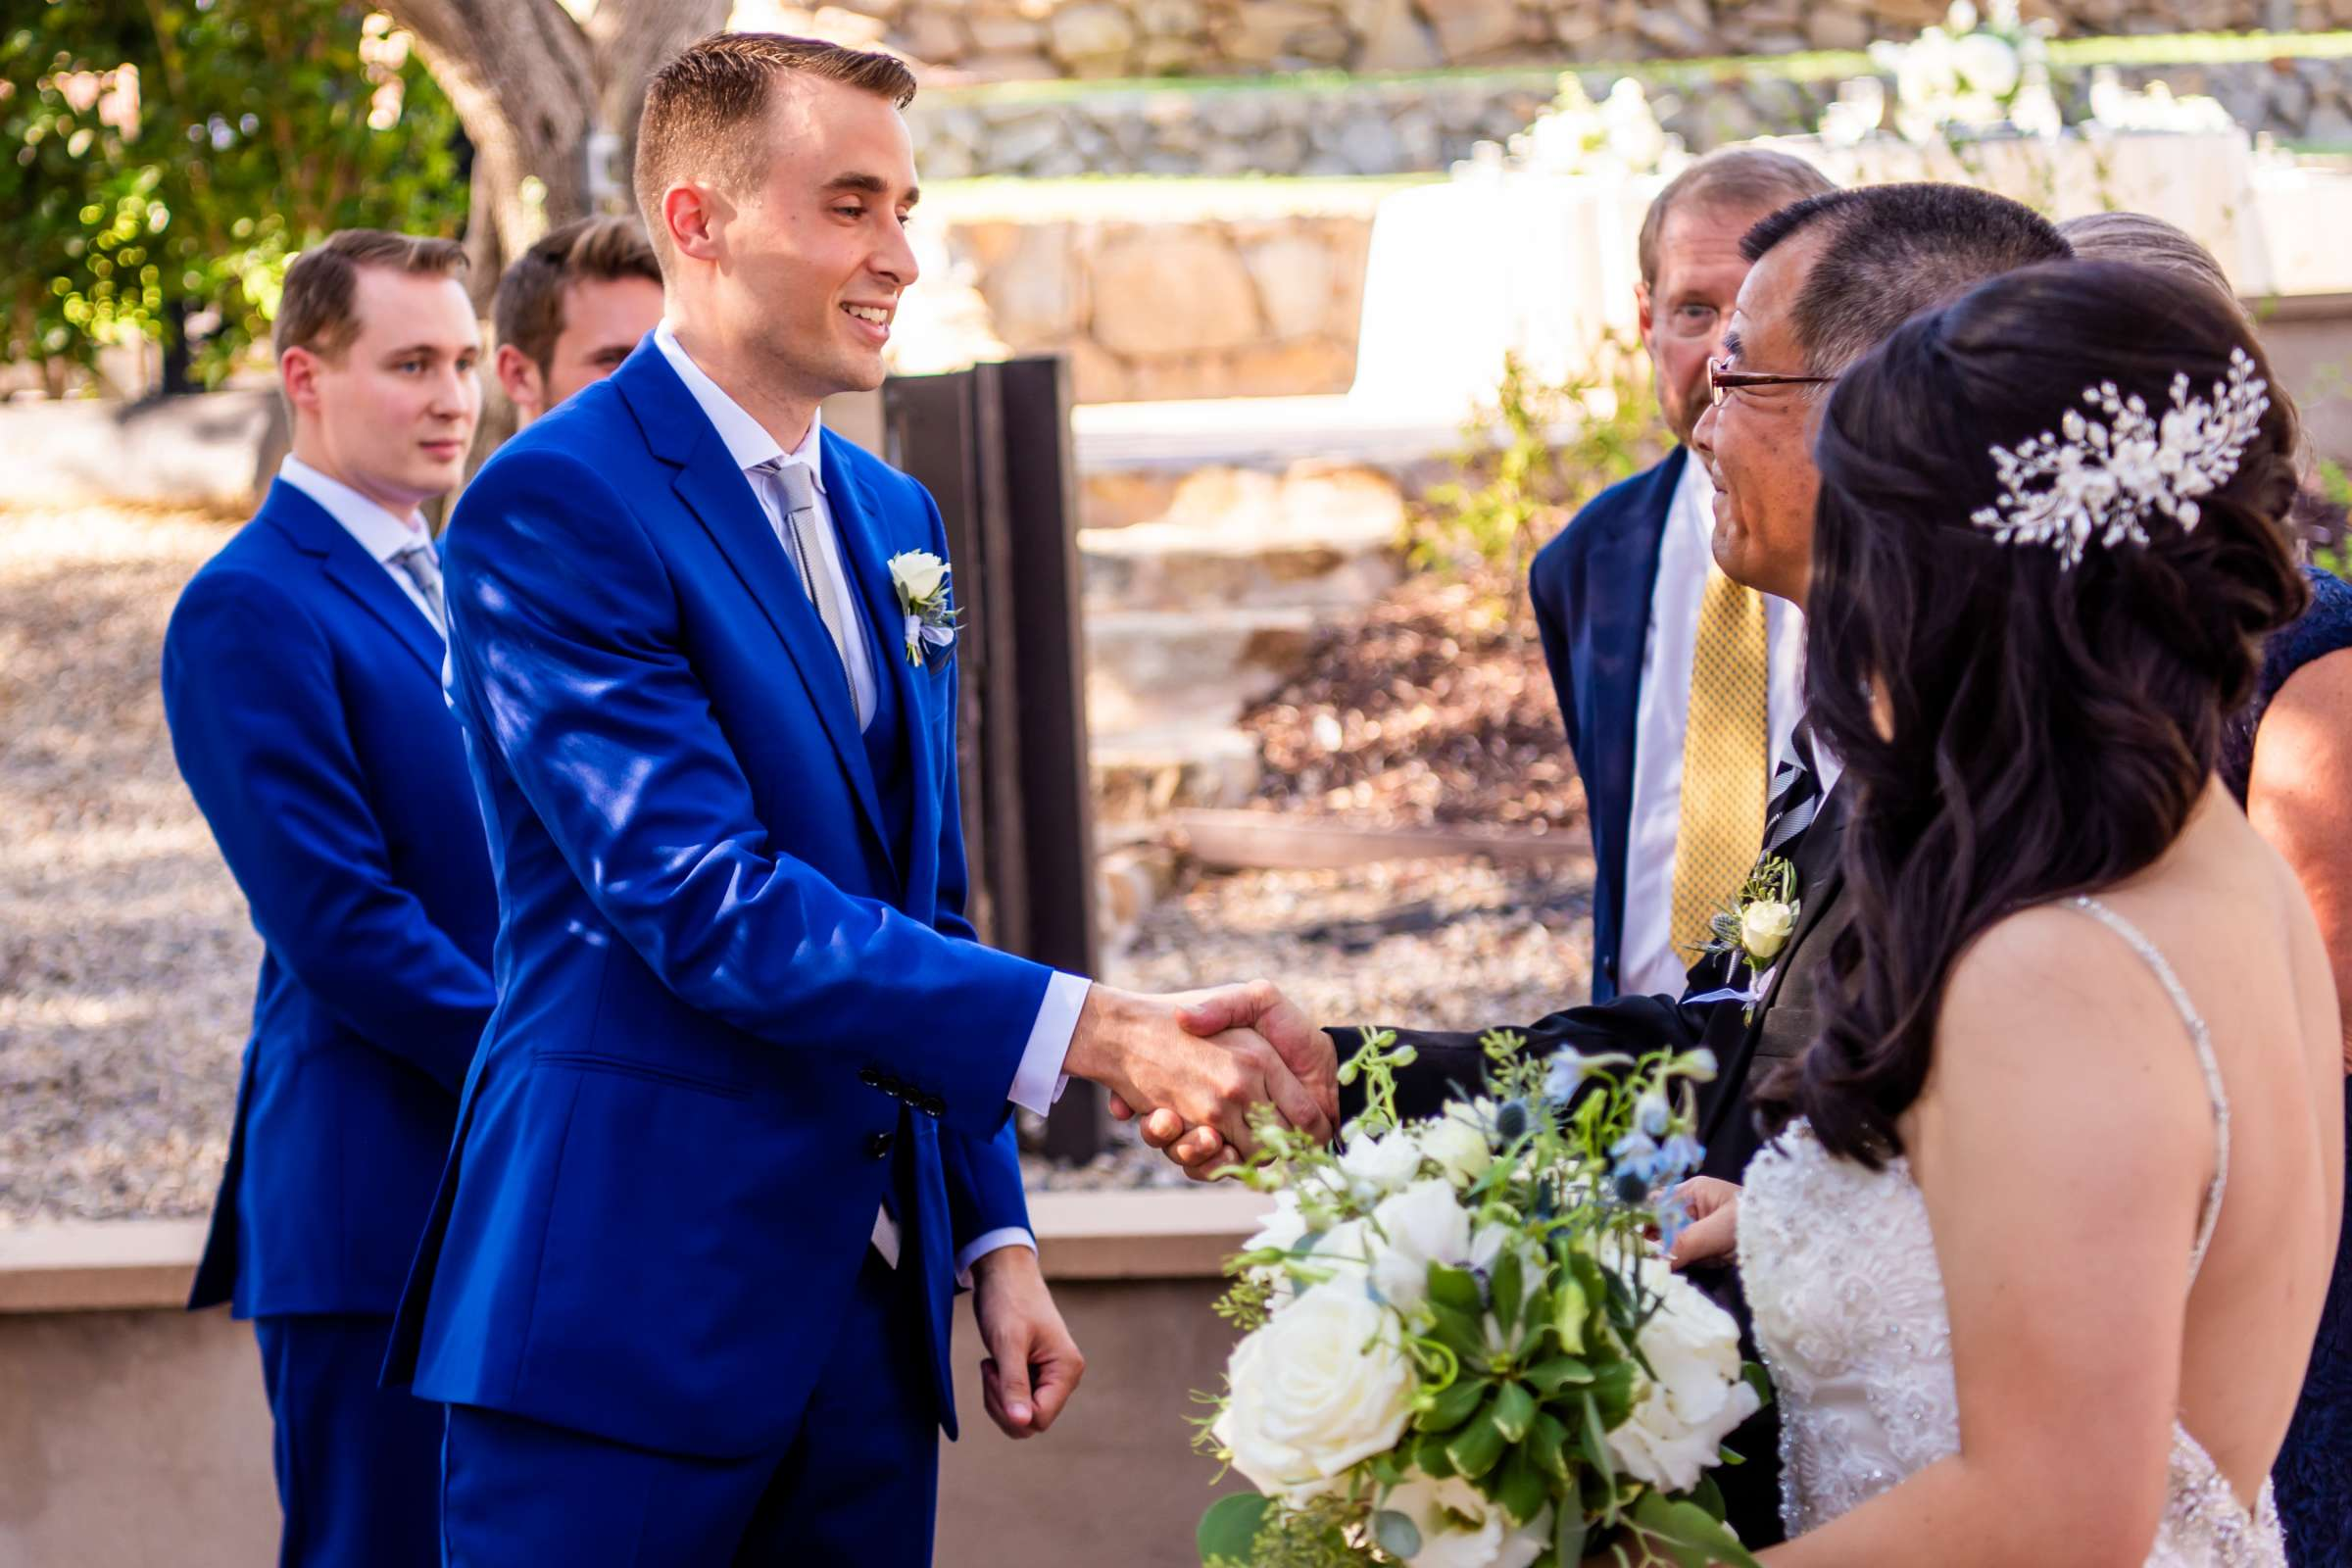 Mt Woodson Castle Wedding coordinated by I Do Weddings, Aya and Jared Wedding Photo #486934 by True Photography